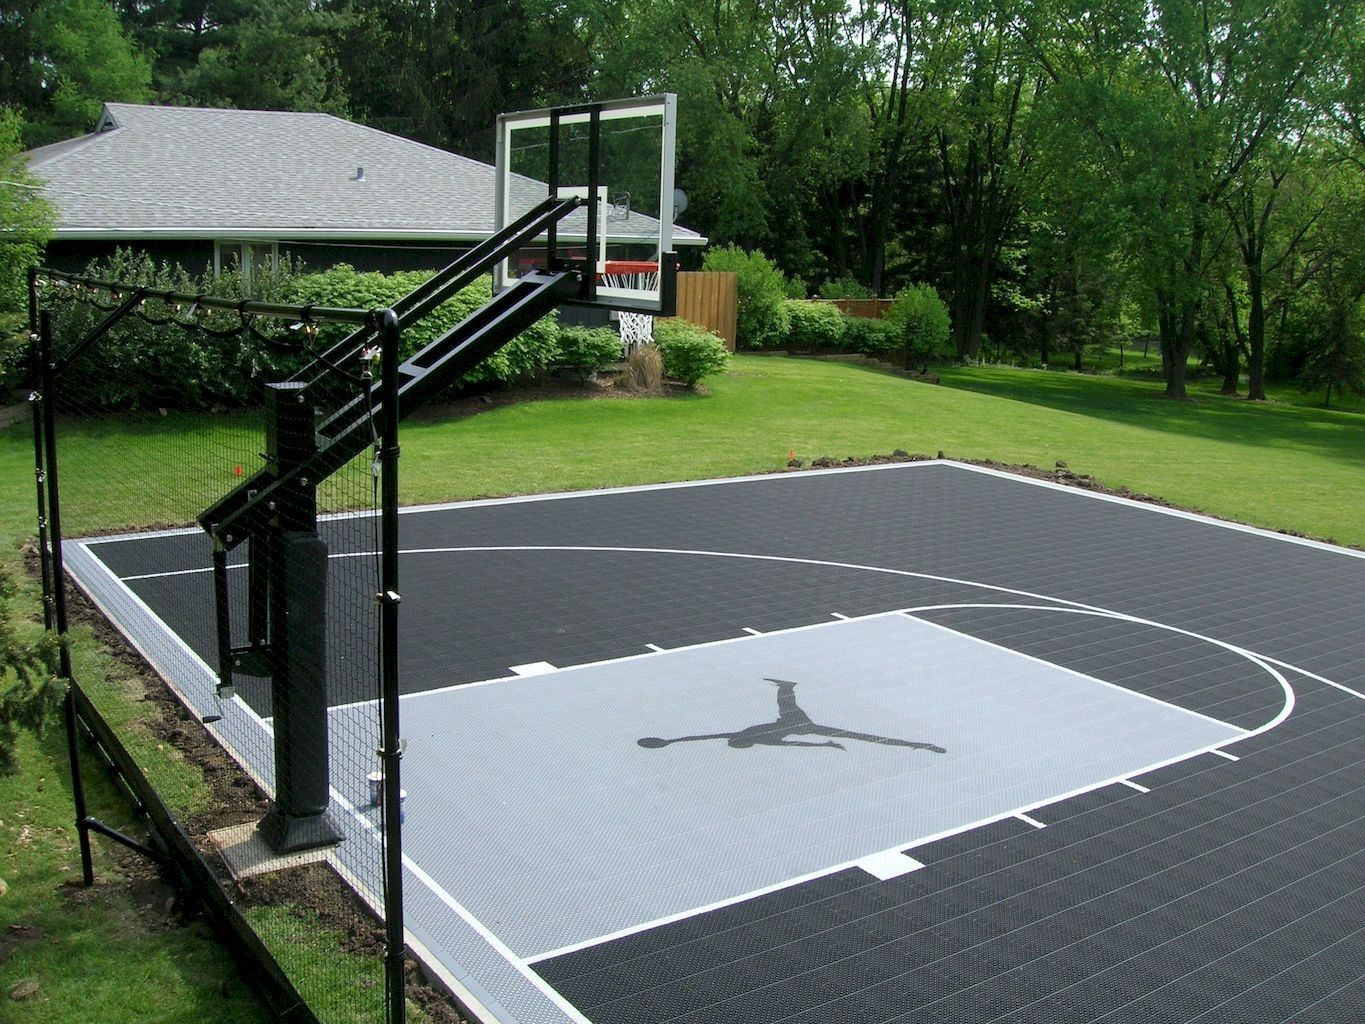 11.SIMPHOME.COM nice sport court backyard design ideas garden pinterest